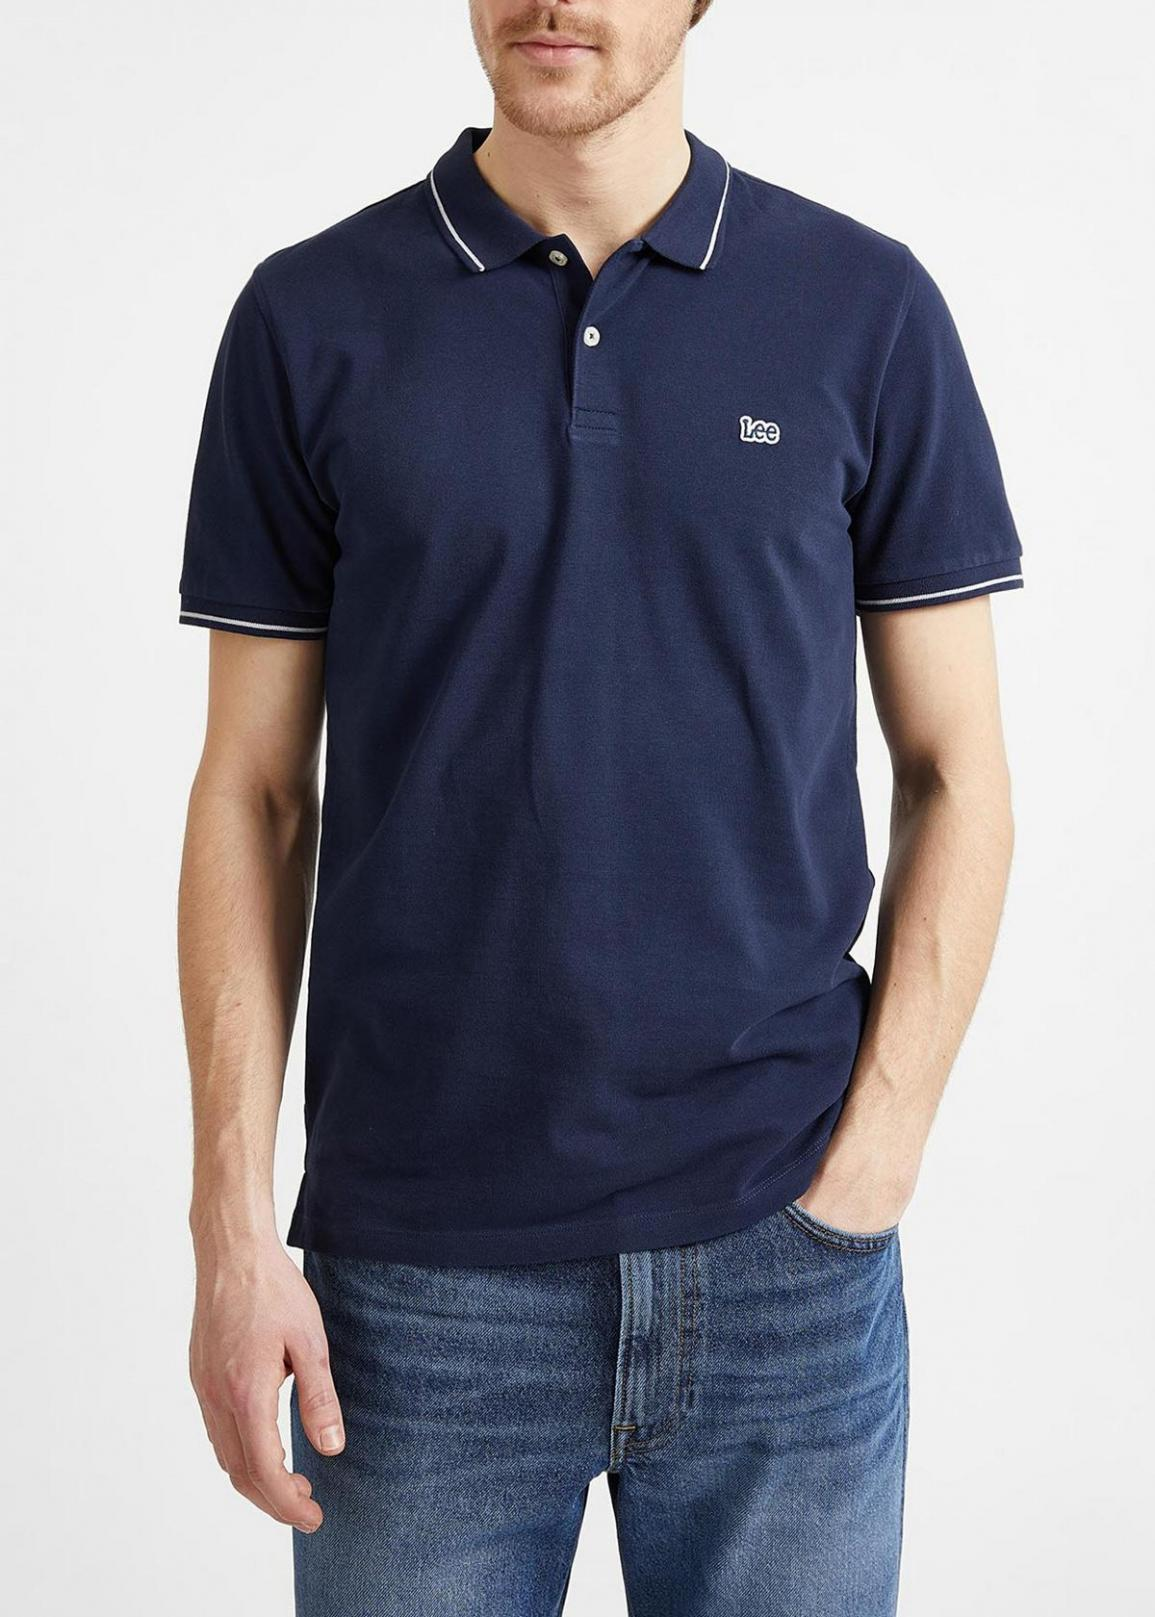 Lee® Pique Polo - Navy